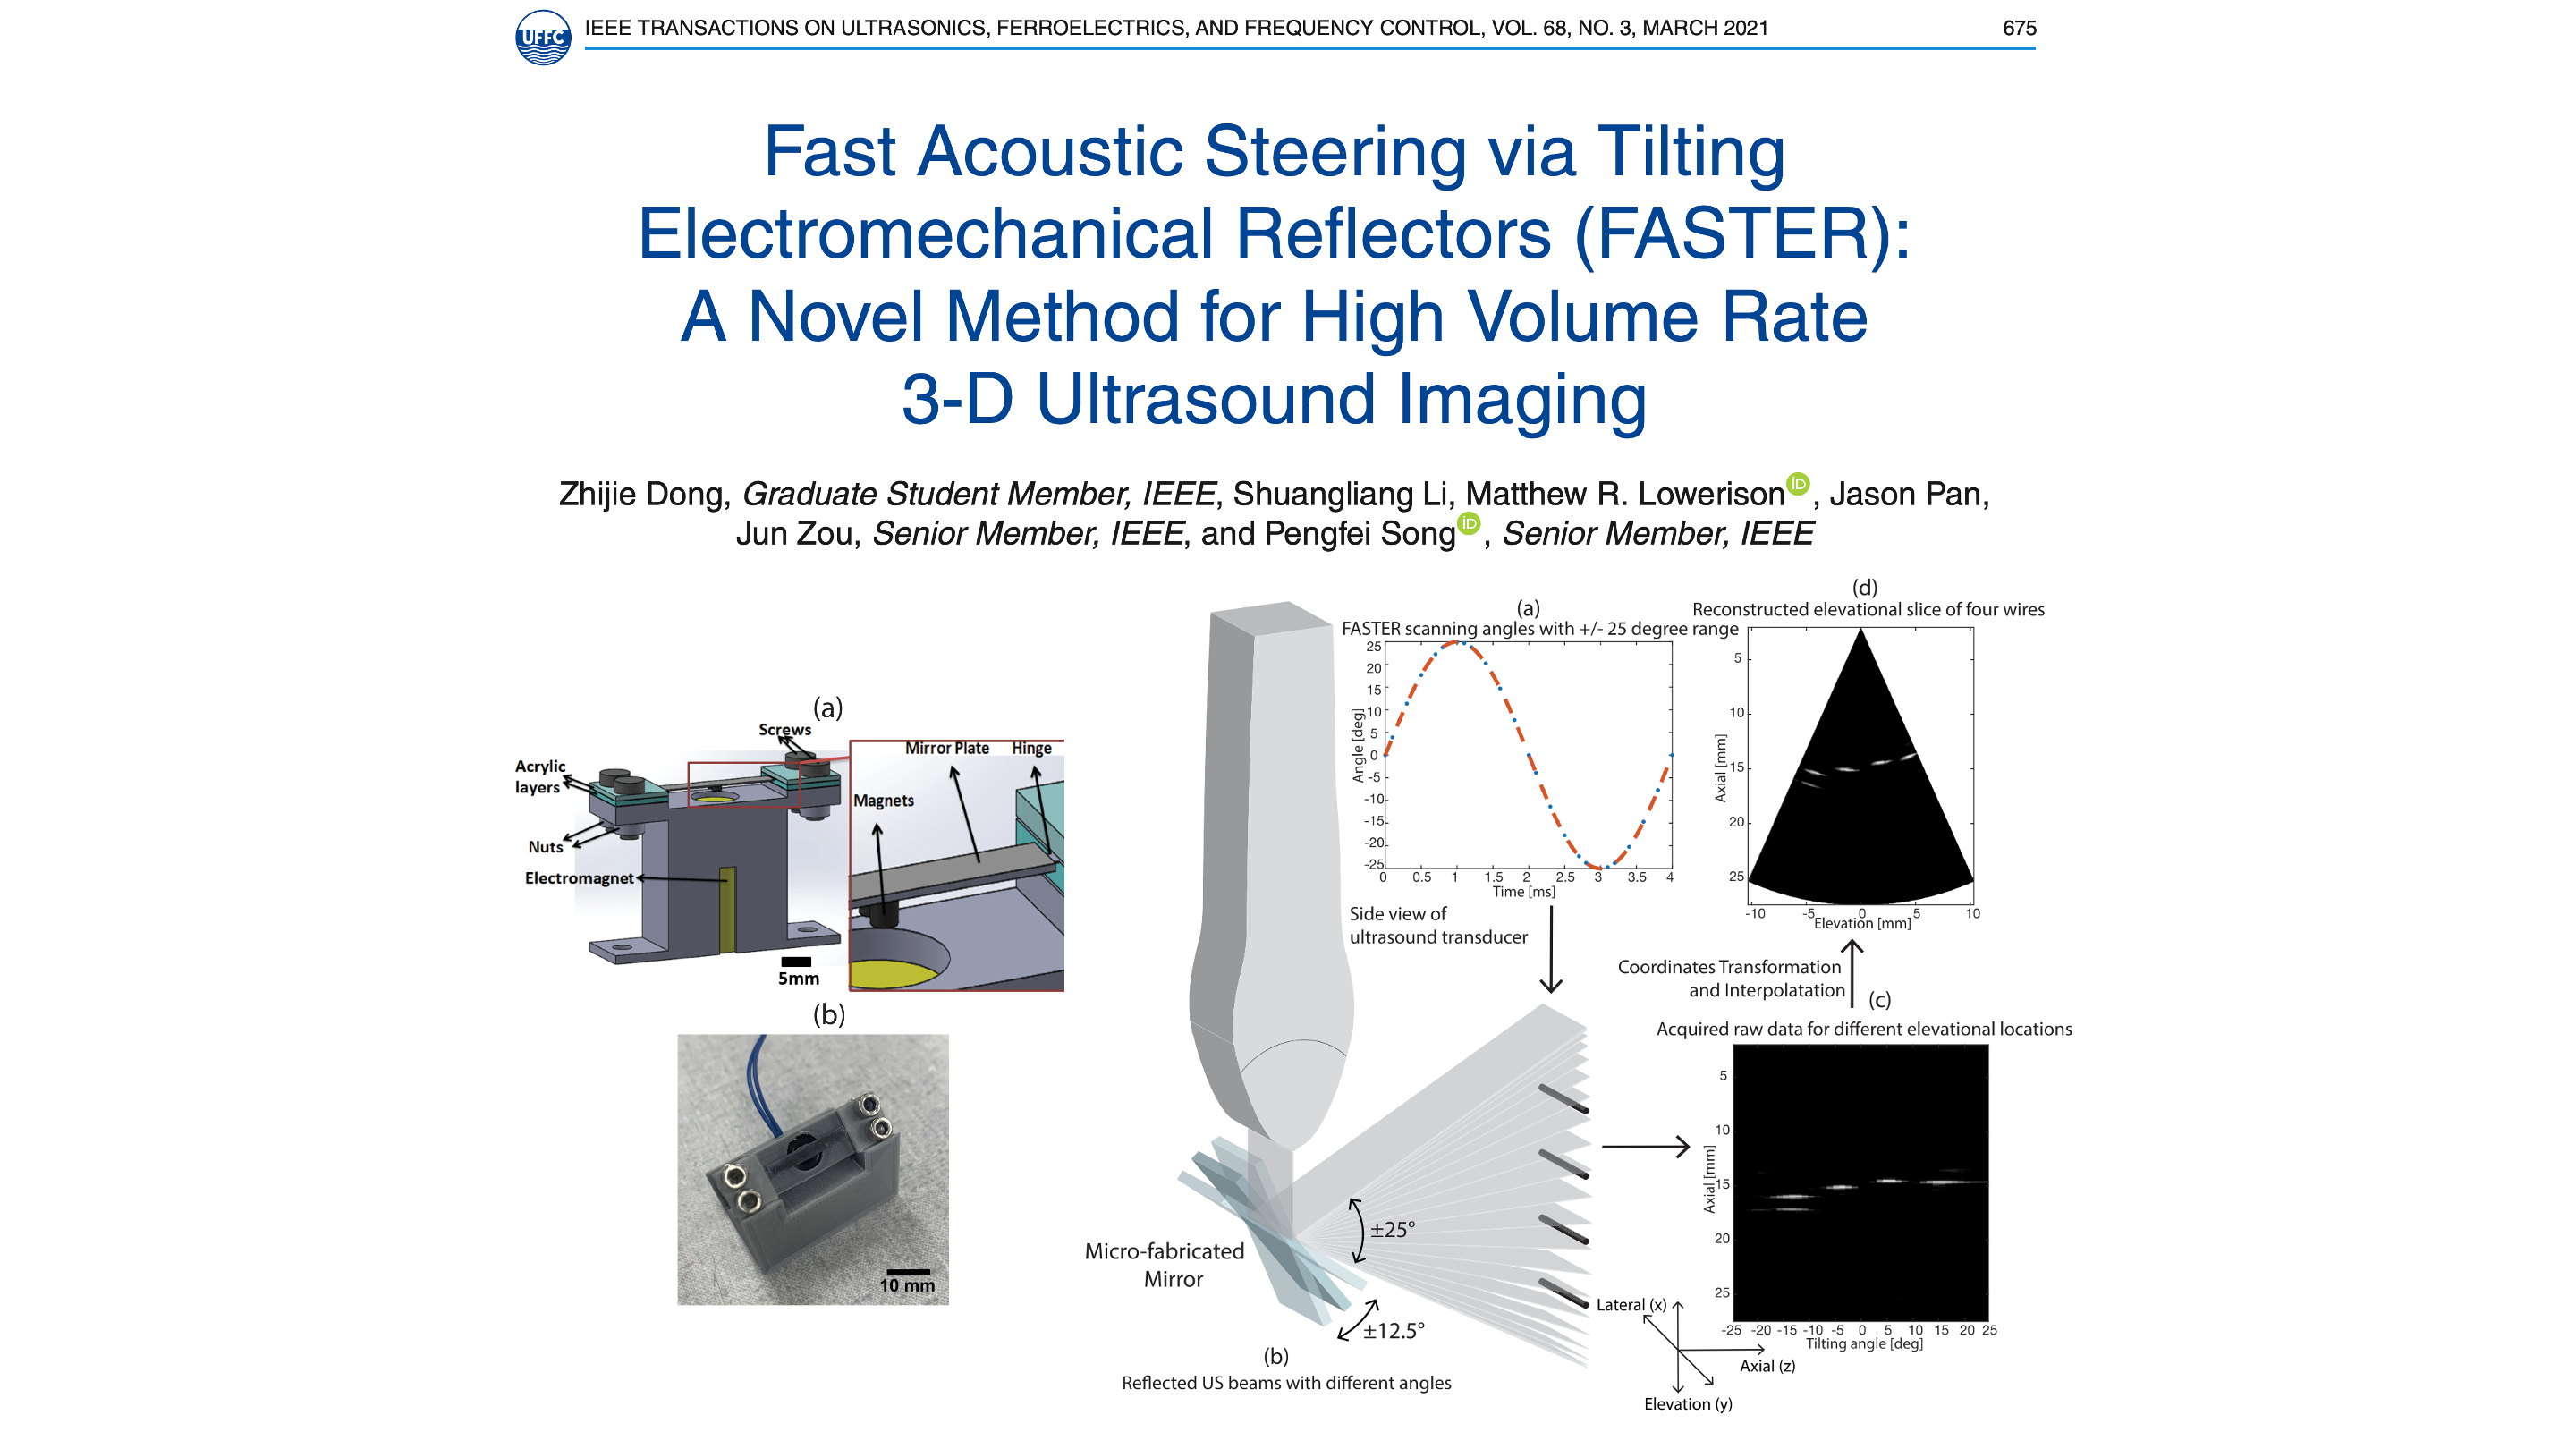 Fast Acoustic Steering via Tilting electromechanical reflectors (FASTER): a novel method for high volume rate 3-D ultrasound imaging. With figures from publication.